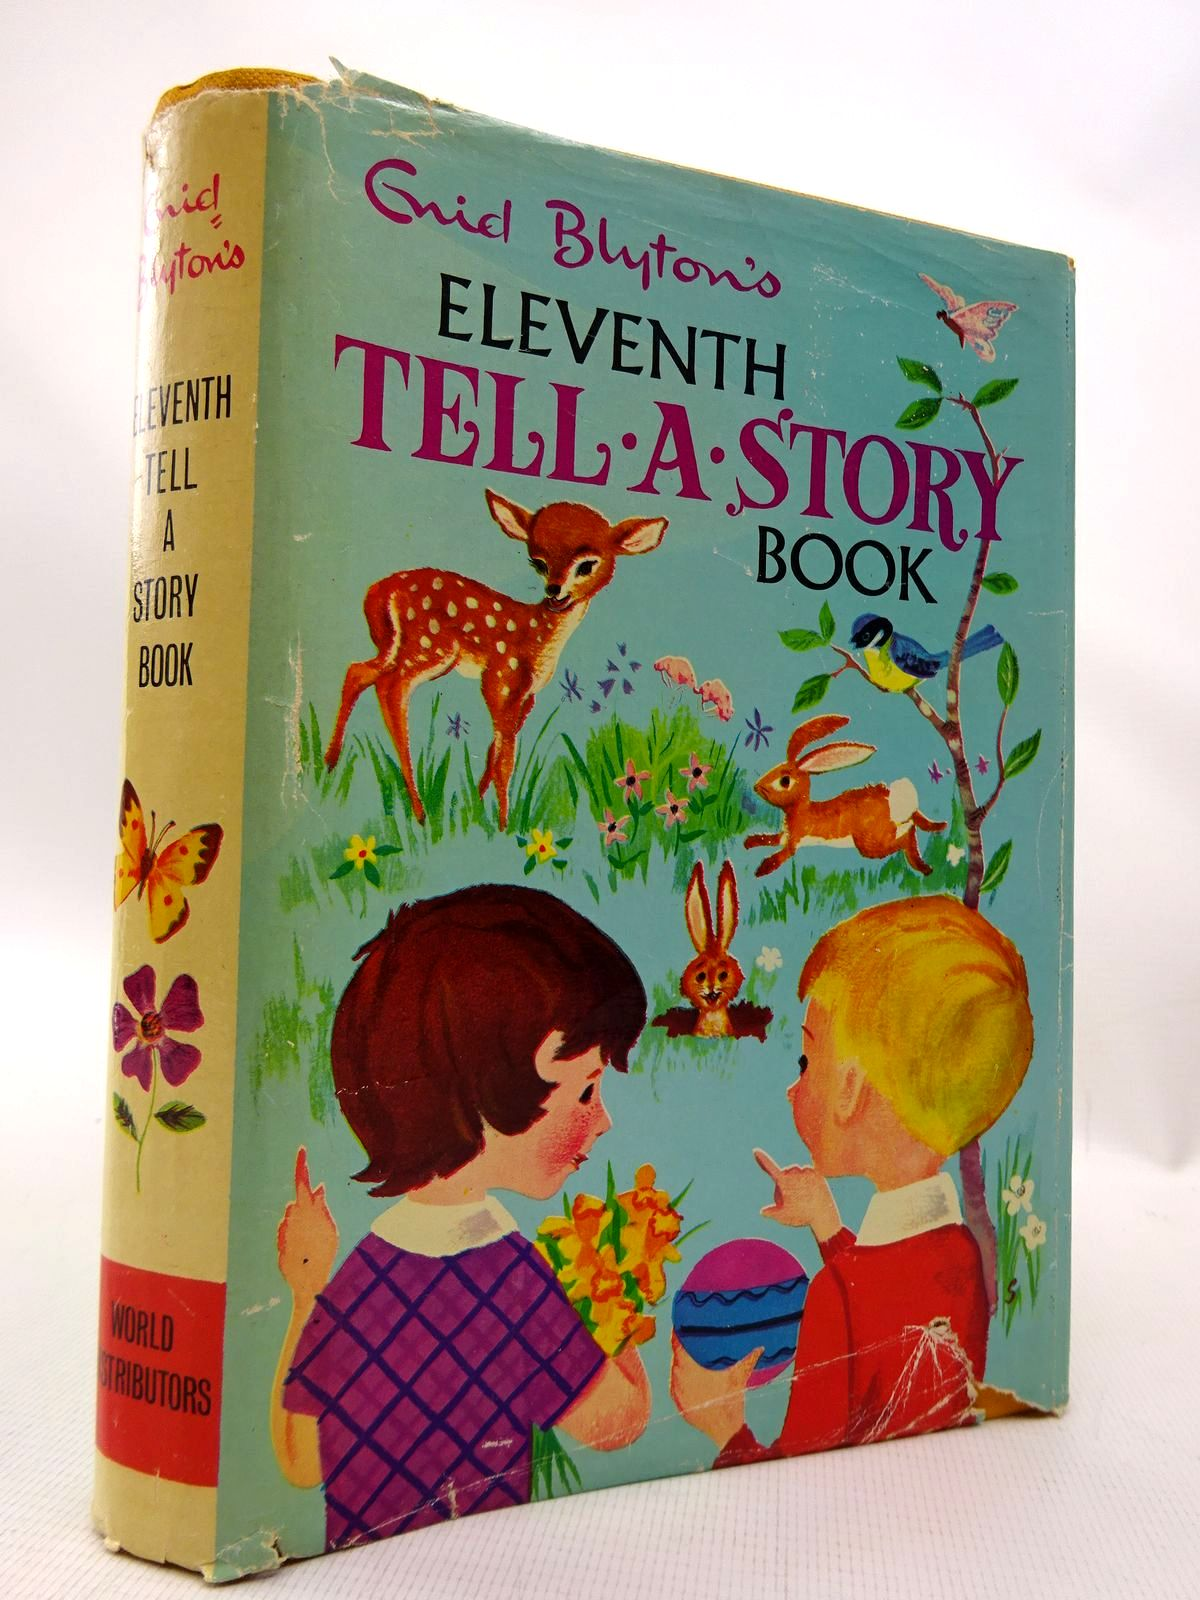 Photo of ENID BLYTON'S ELEVENTH TELL-A-STORY BOOK written by Blyton, Enid published by World Distributors Ltd. (STOCK CODE: 1815830)  for sale by Stella & Rose's Books